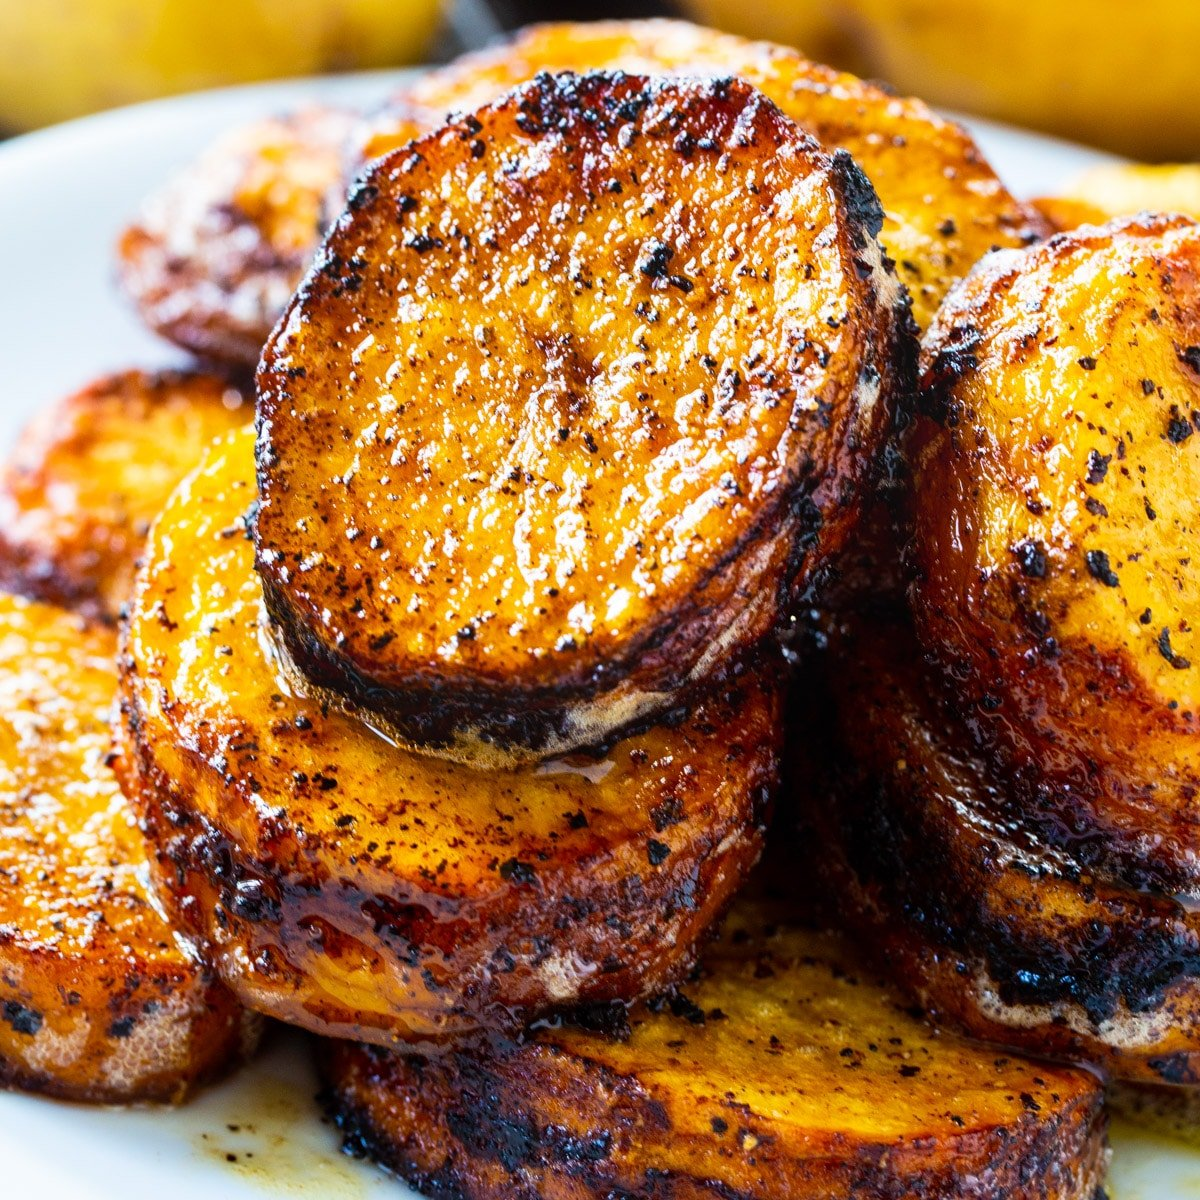 Spicy Melting Potatoes piled up on a plate.